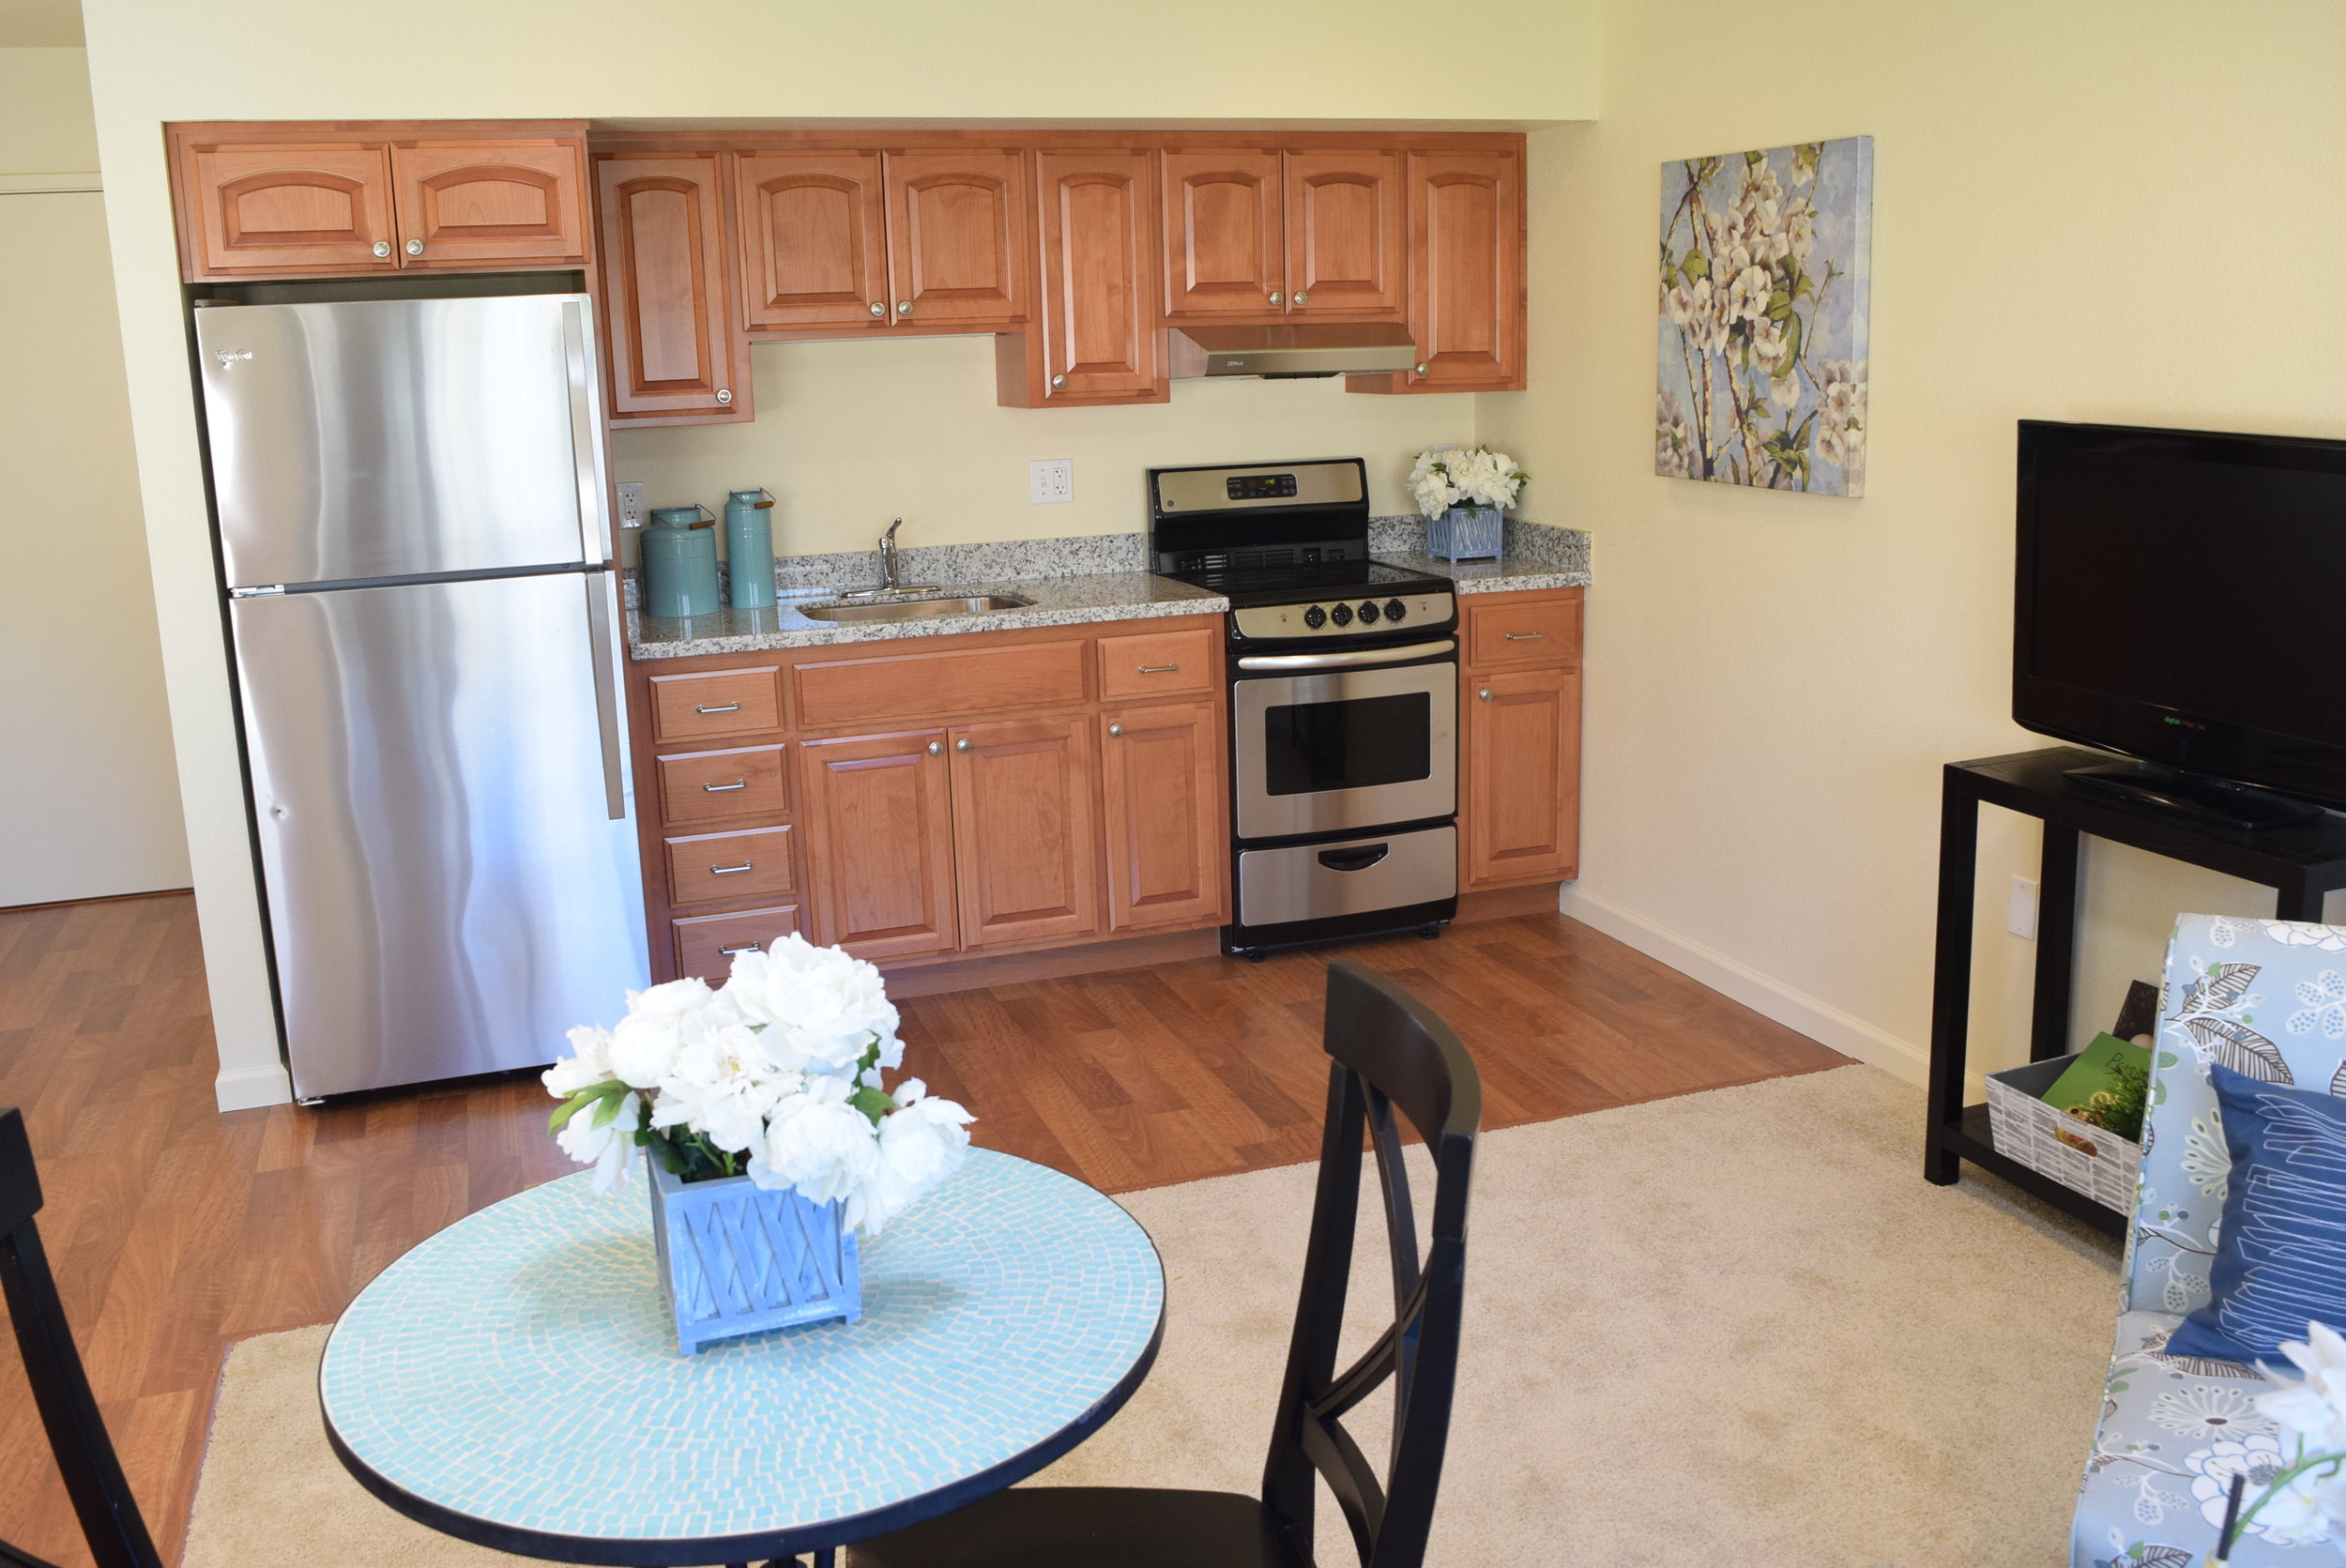 Independent Living 1 Bedroom with Full Kitchen  Entry Fees starting at $147,000.